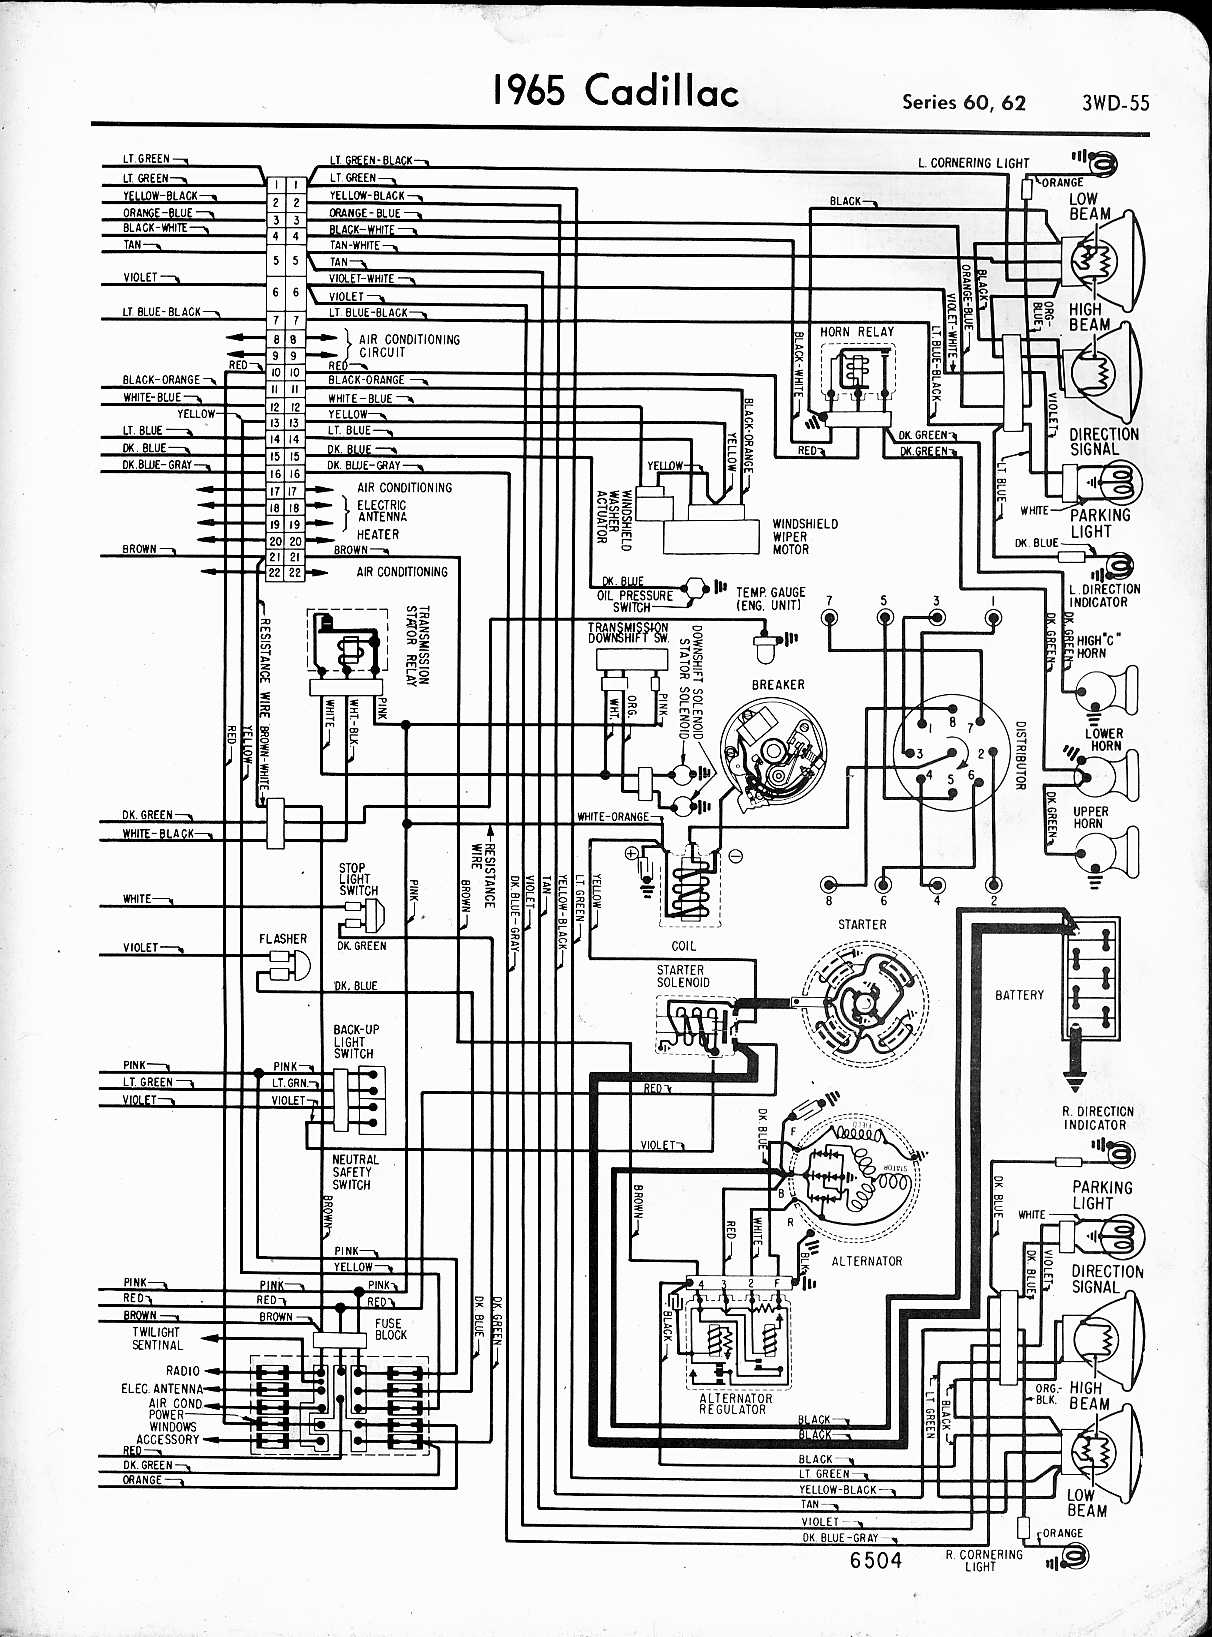 Cadillac Deville Wiring Diagram - wiring diagram series-person -  series-person.eugeniovazzano.it | 1998 Cadillac Eldorado Wiring Diagram |  | Eugenio Vazzano